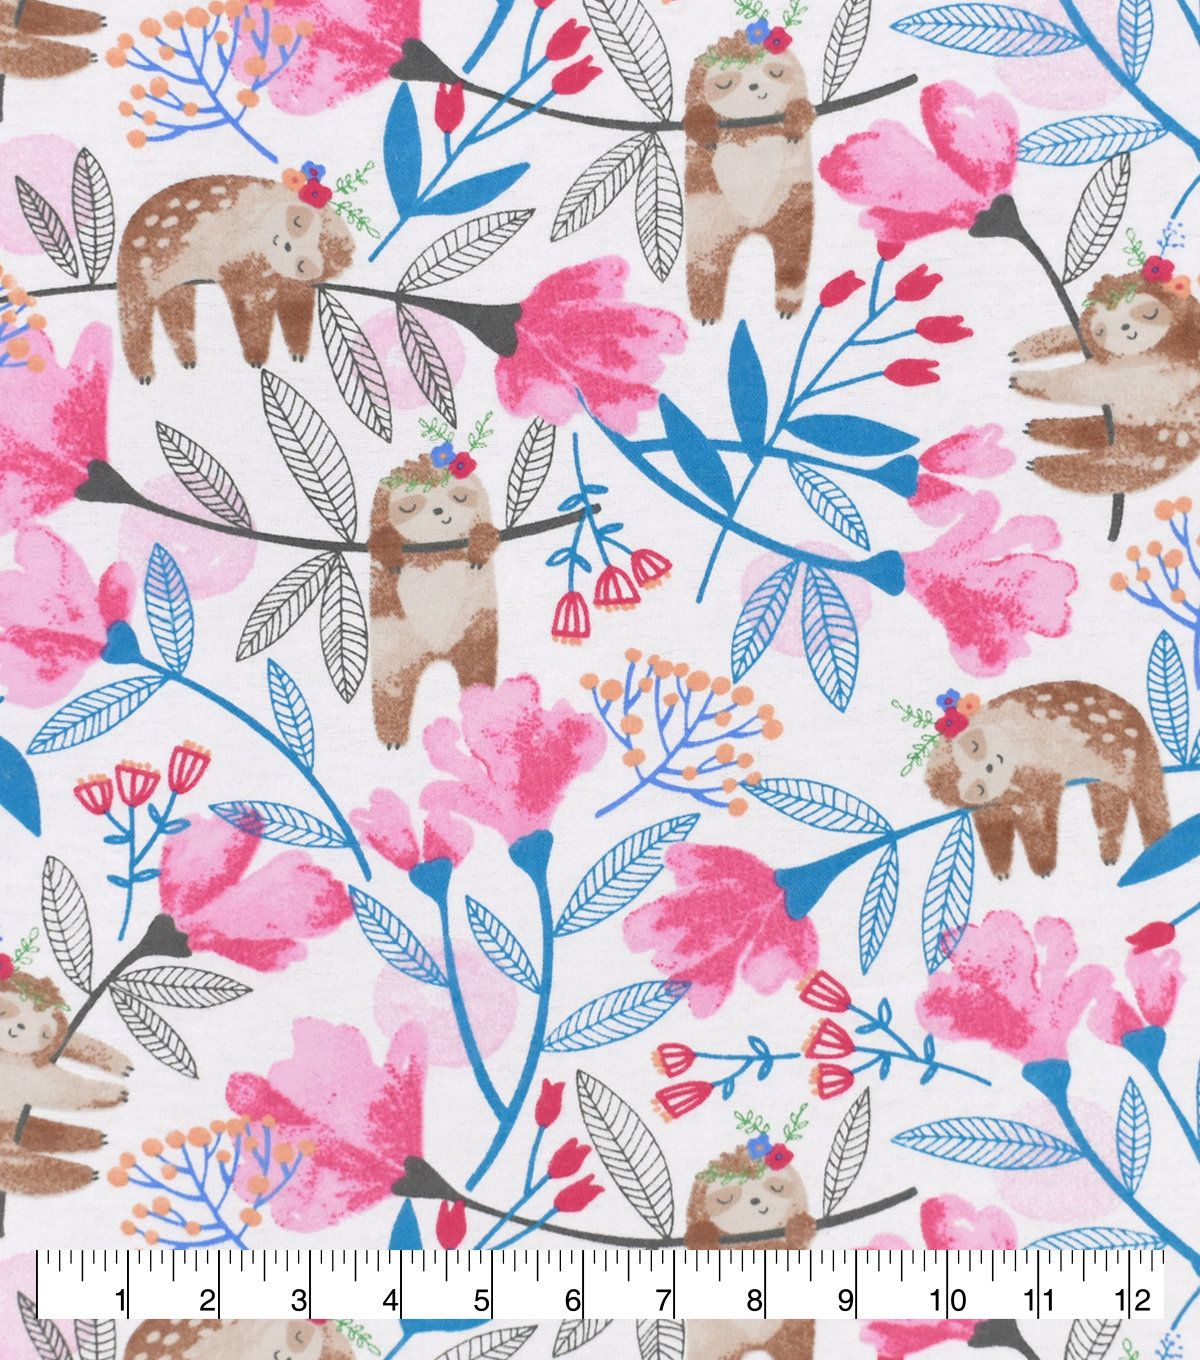 Snuggle Flannel Hanging Floral Sloth Fabric By The Yard Flannel Fabric Fabric Birds Fabric Flags